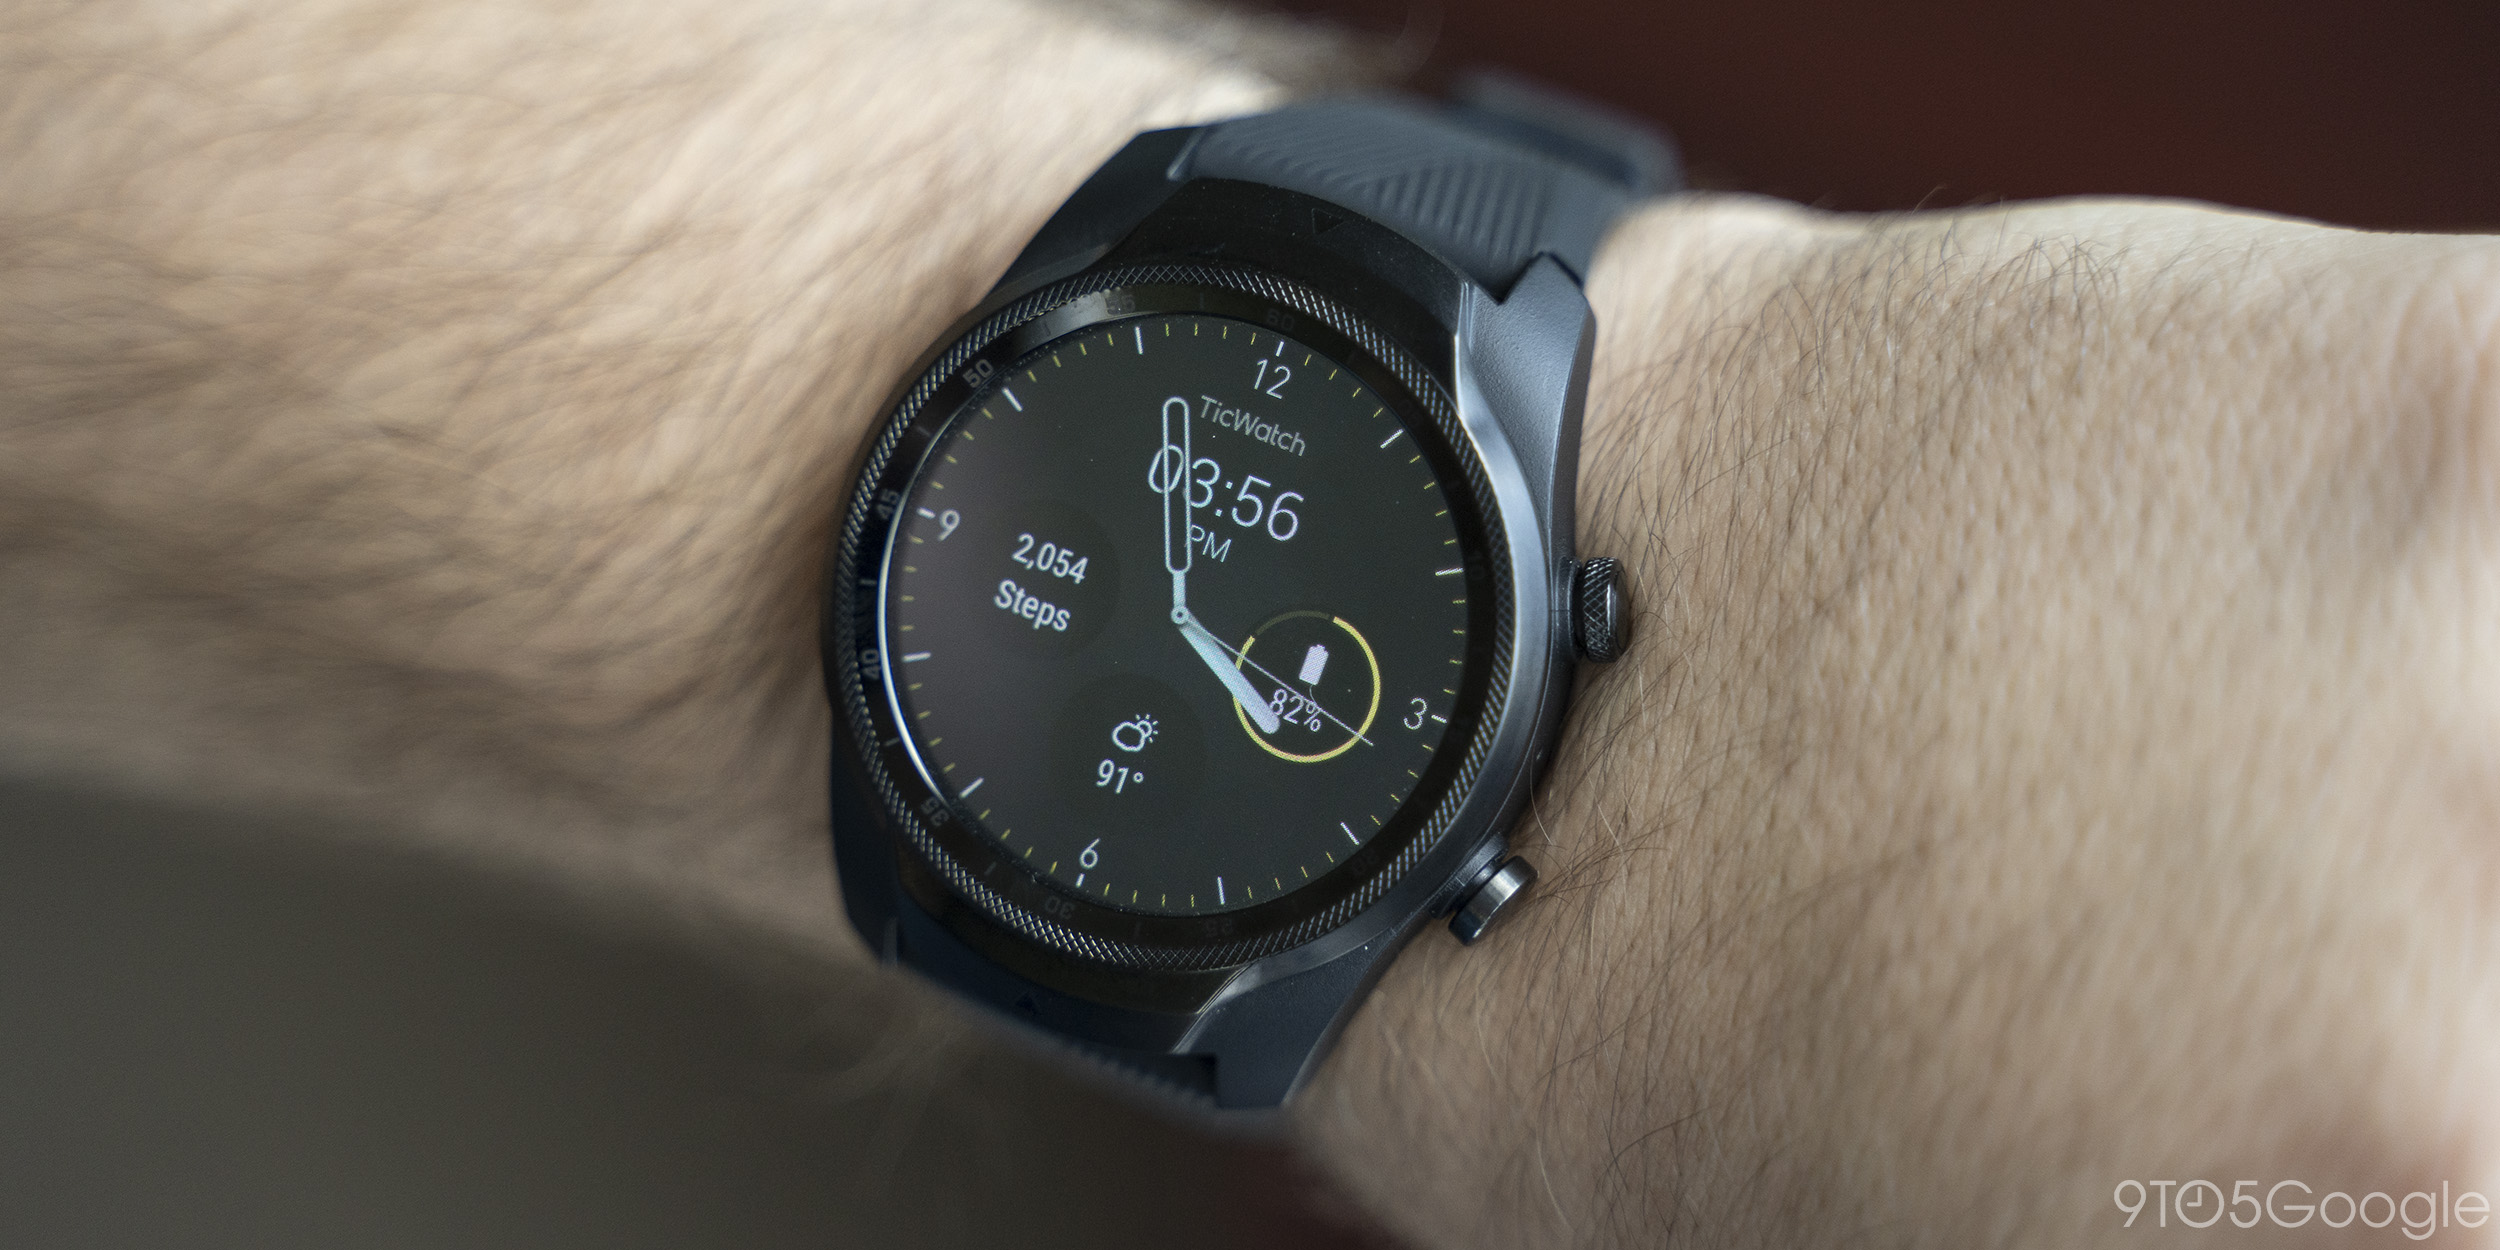 Mobvoi launches TicWatch Pro 4G in the UK for £249 w/ Vodafone connectivity